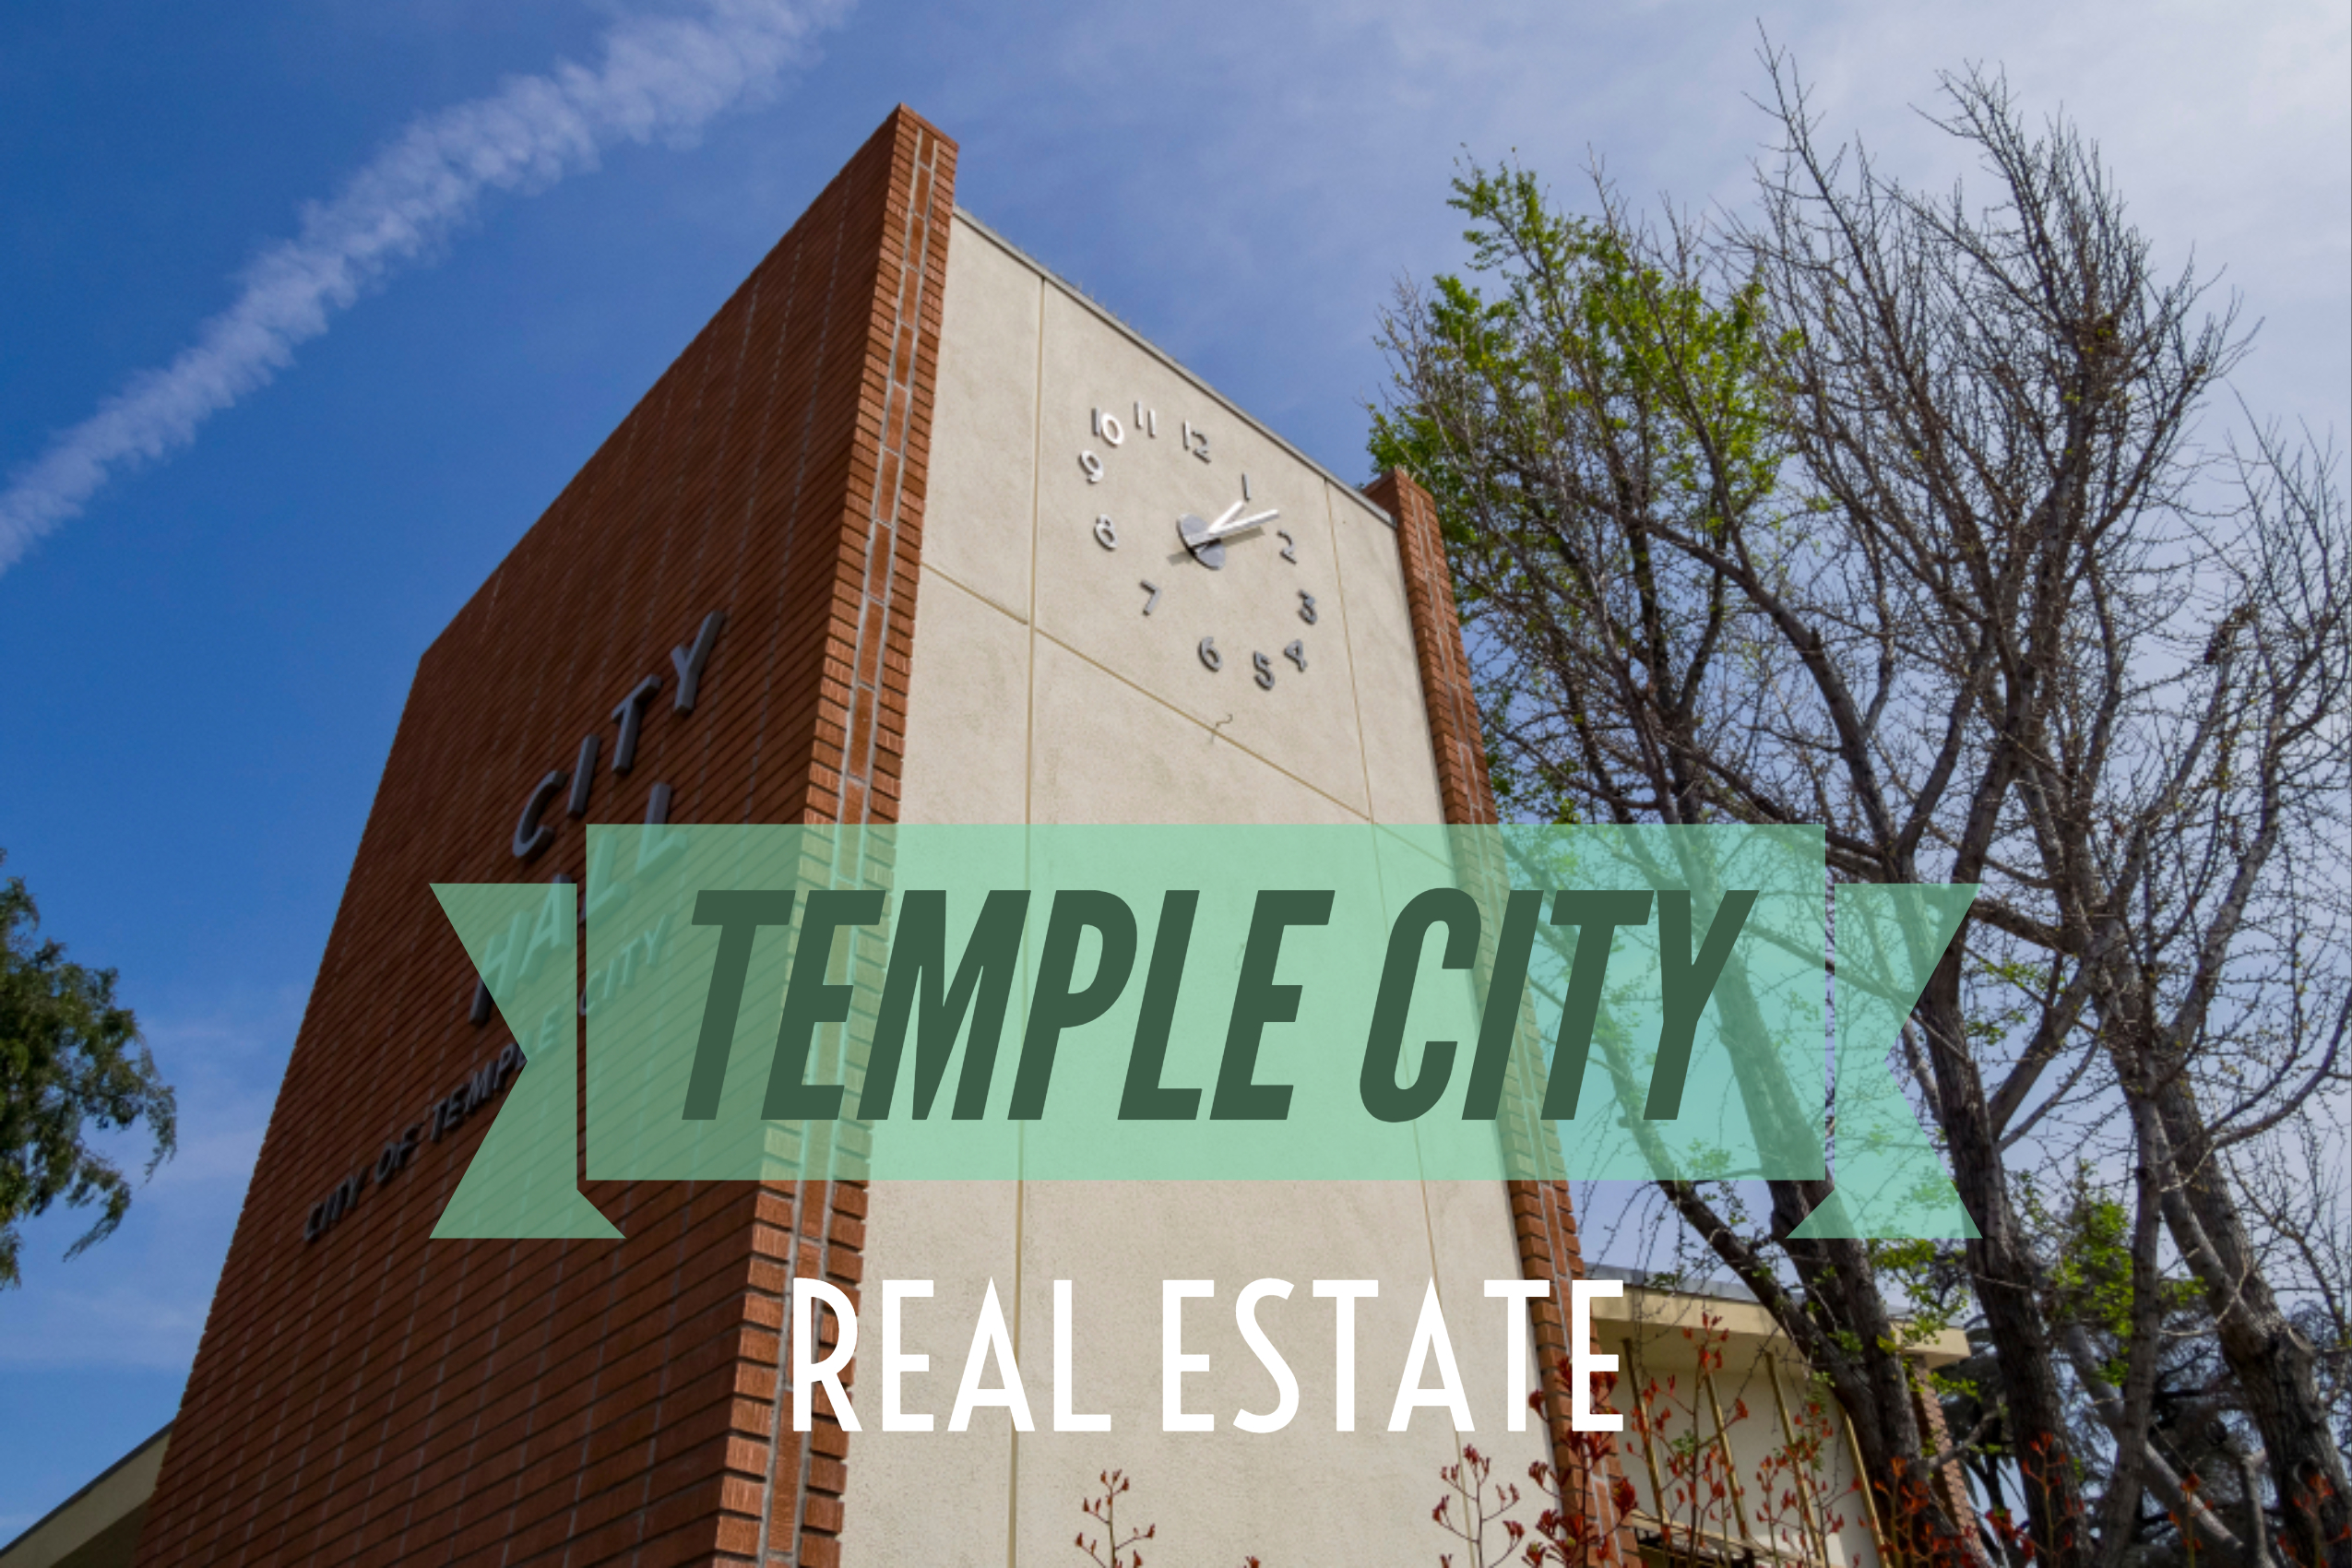 Temple City-Real-Estate-Temple City-Real-Estate-Agent-Temple City-Realtor-Luxury-Real-Estate-TalkToPaul-Slide-1